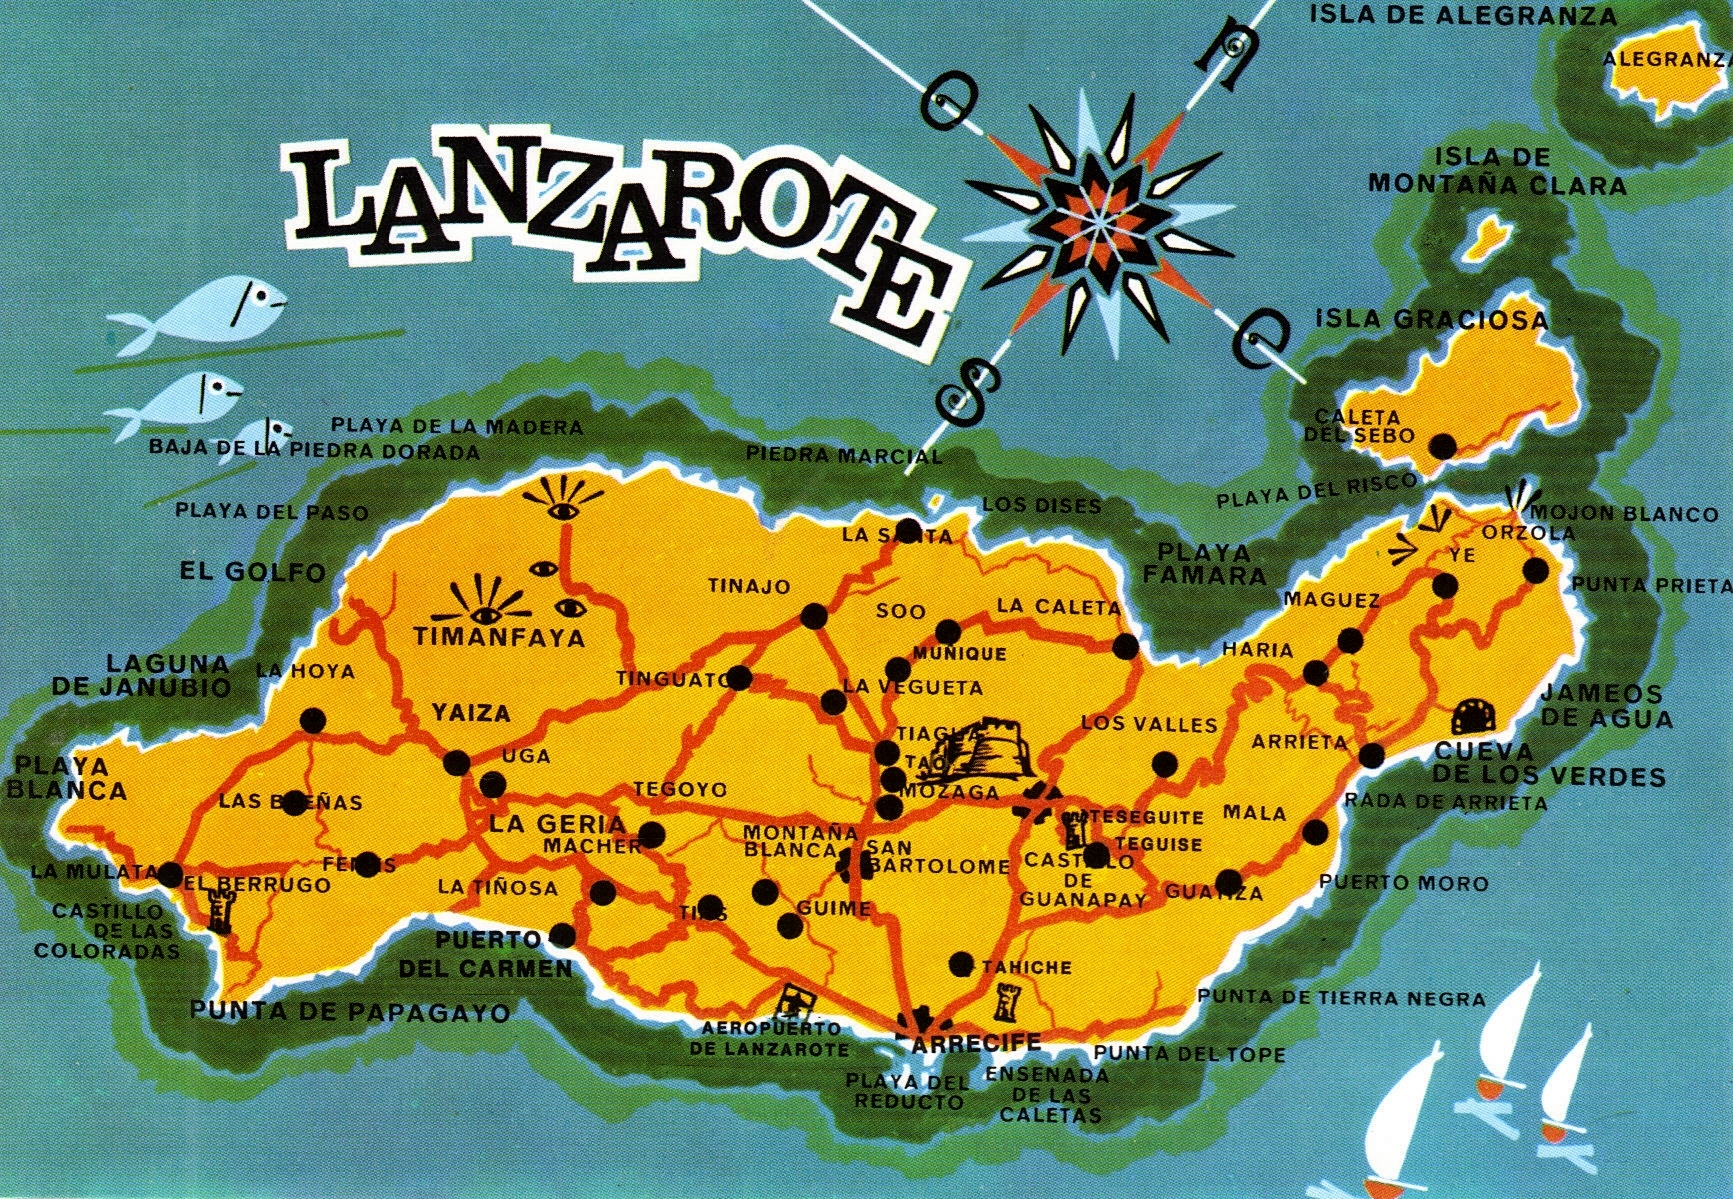 More postcard maps spanish islands have bag will travel lanzarote island map postcard gumiabroncs Image collections